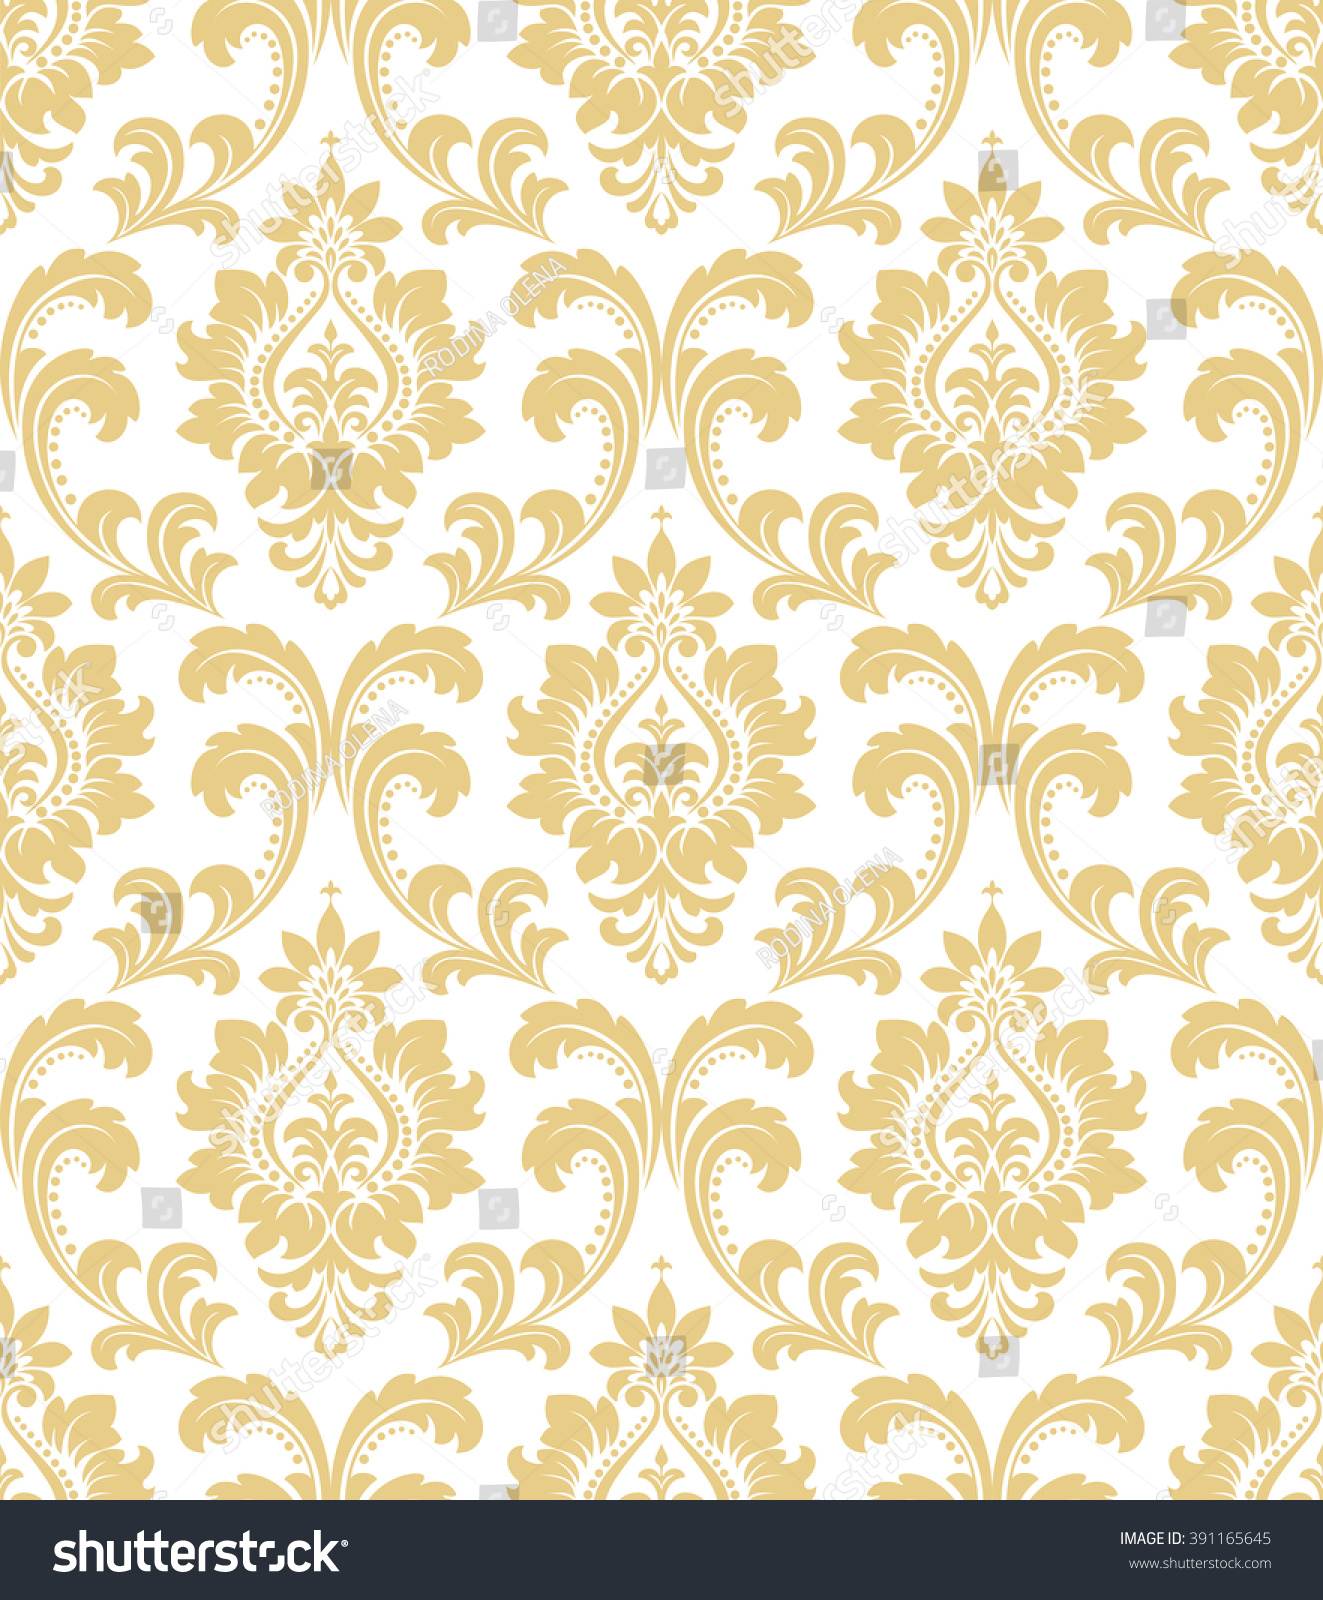 white and gold floral wallpaper - photo #5